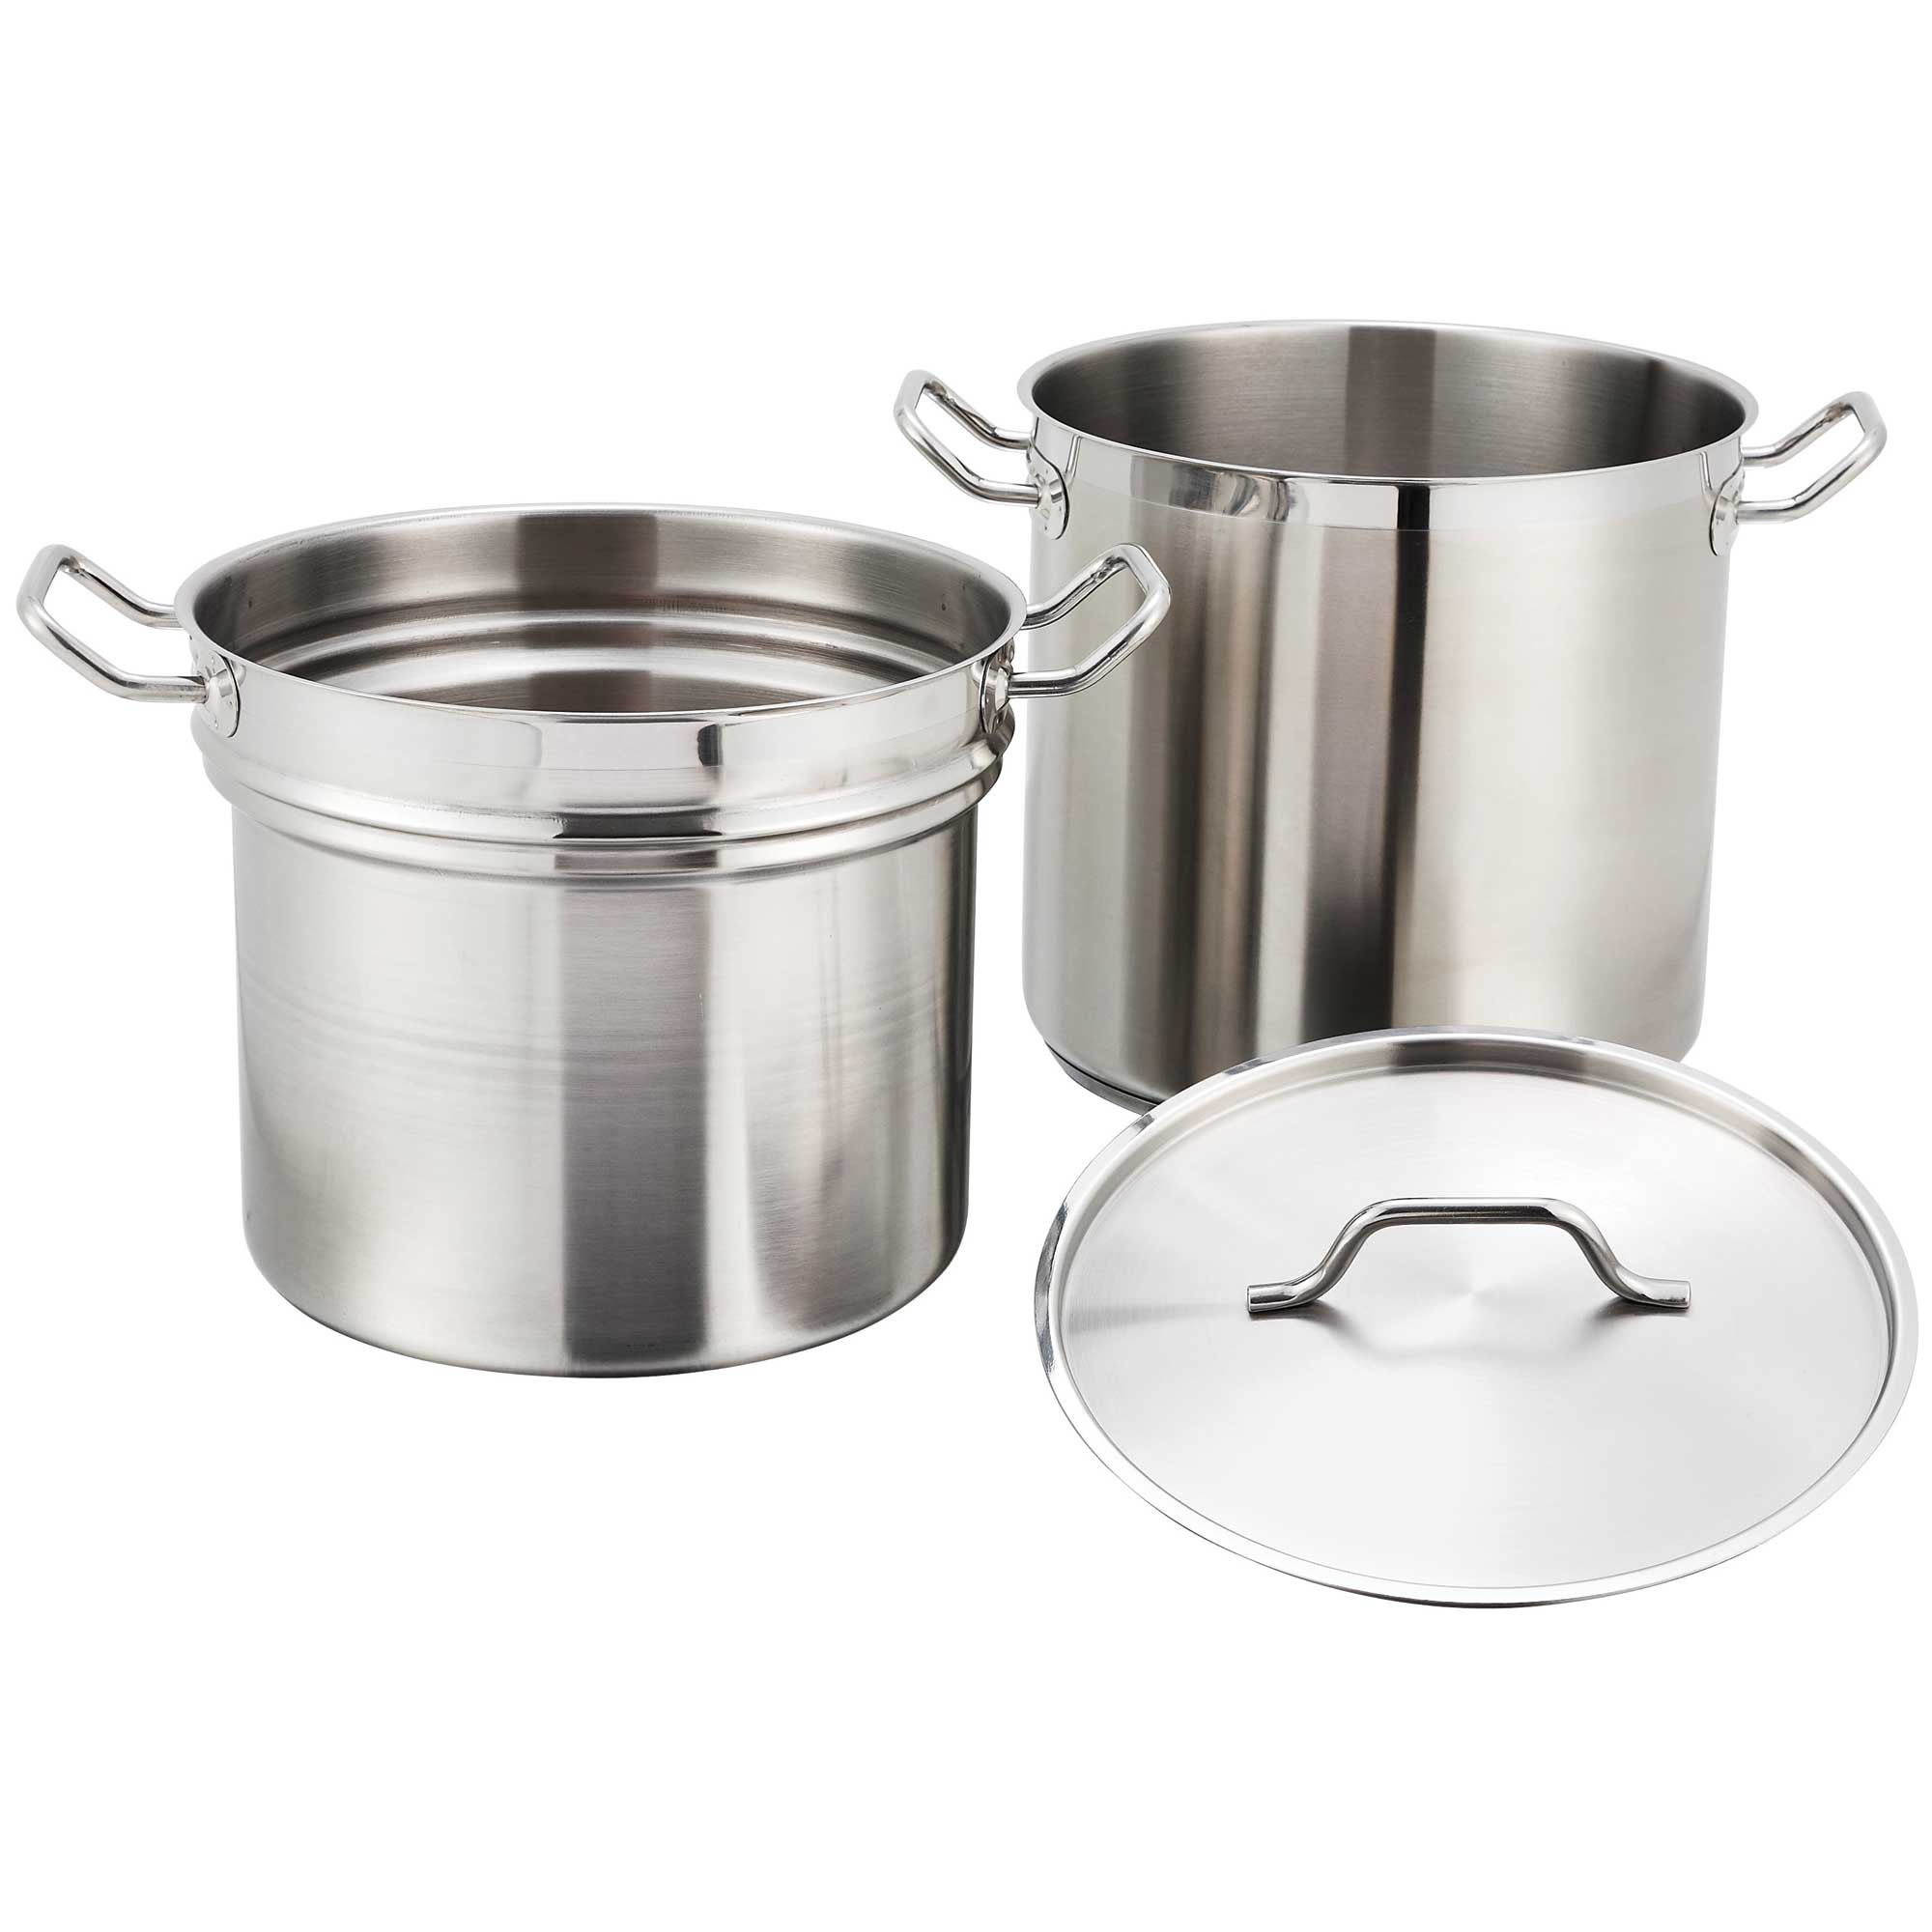 FortheChef 8 Qt. Stainless Steel Induction-Ready Double B...